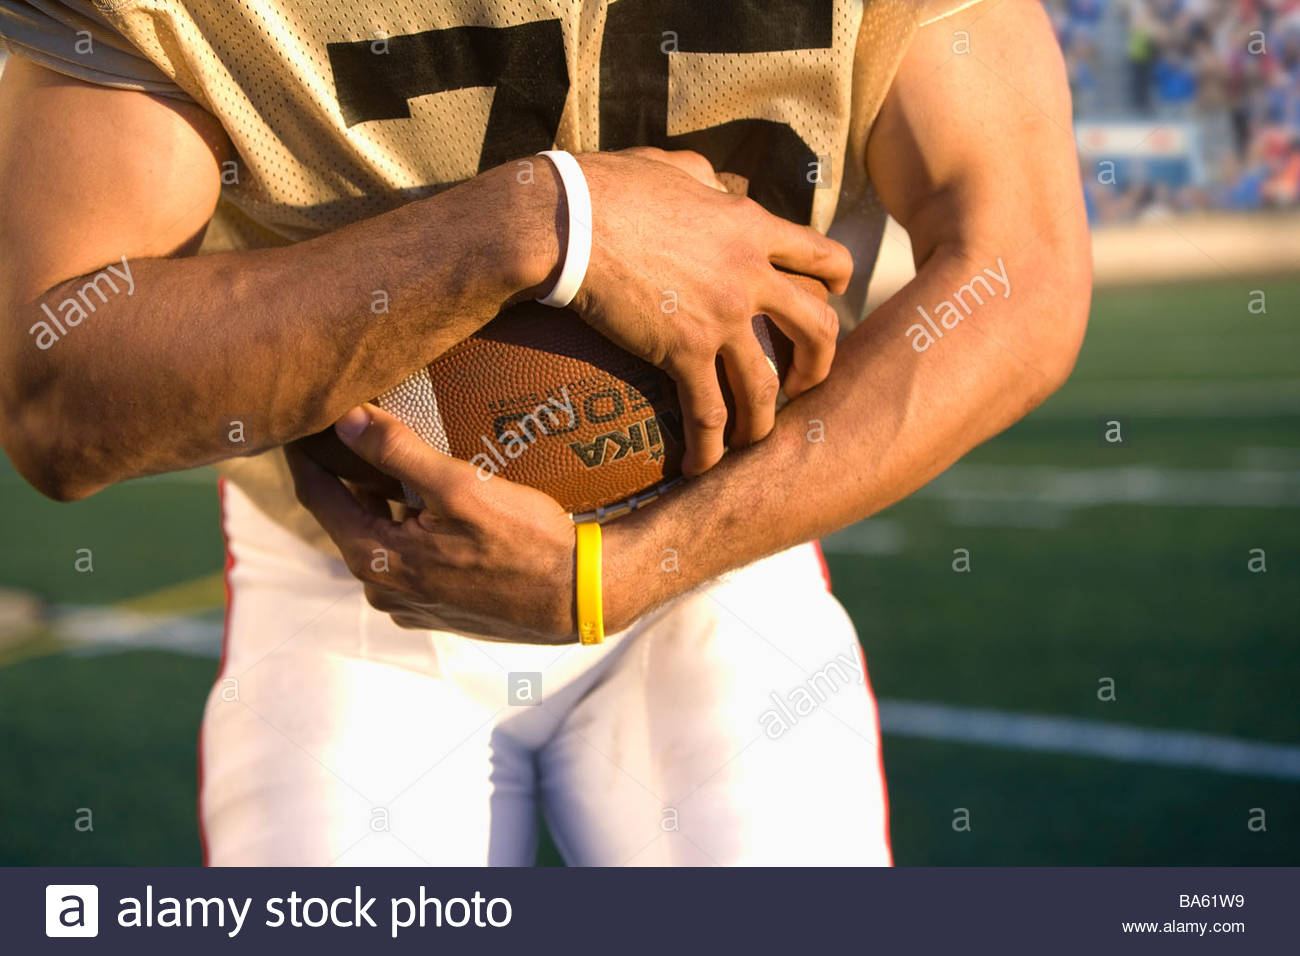 Close up of football player holding football - Stock Image